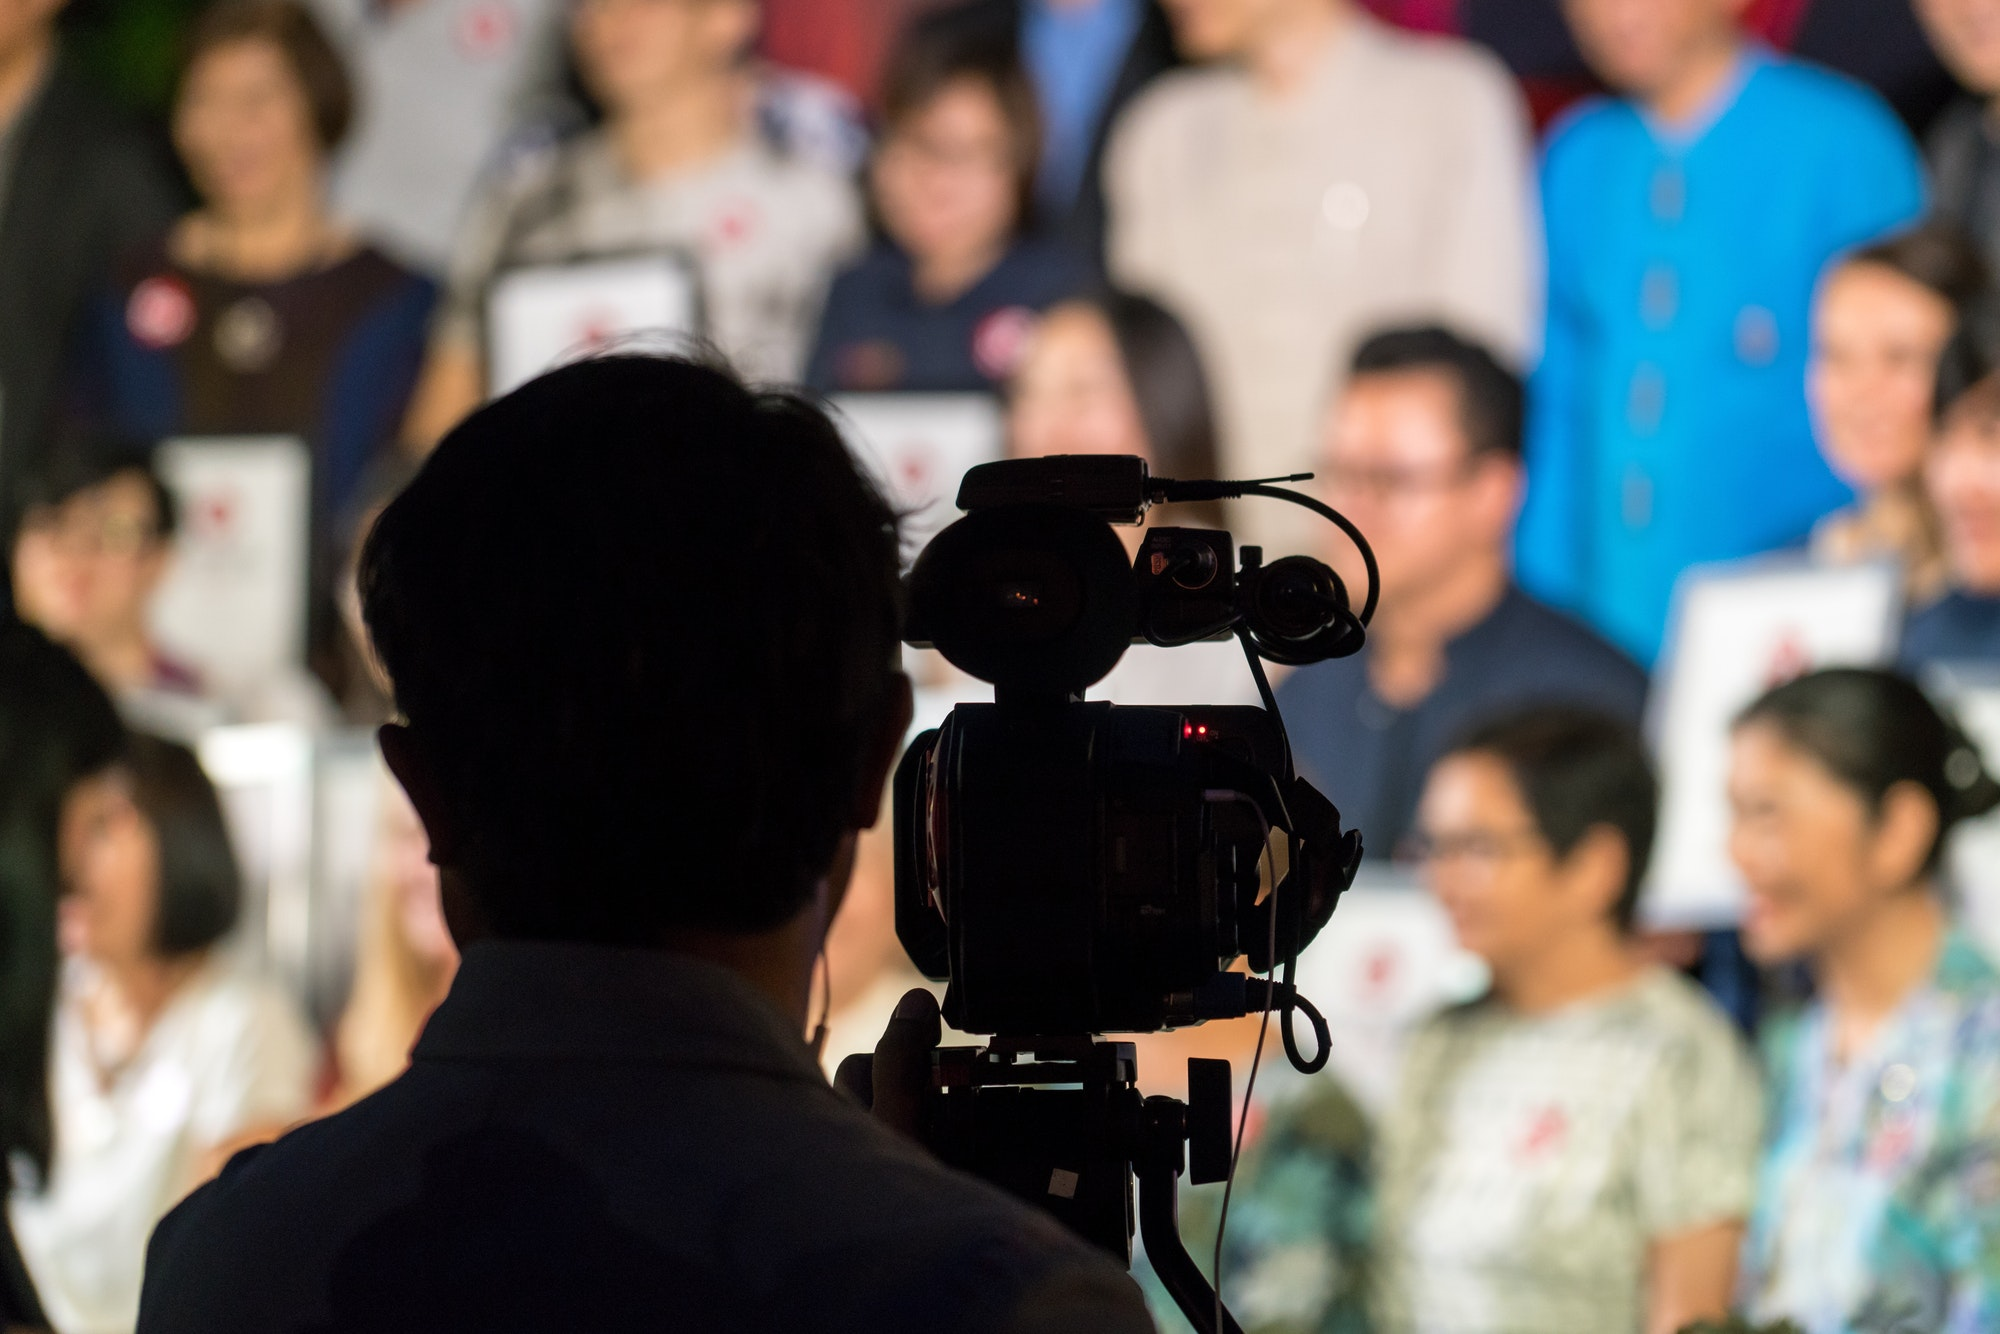 Silhouette of camera man from behind with audience of many men and women sitting blurred in the